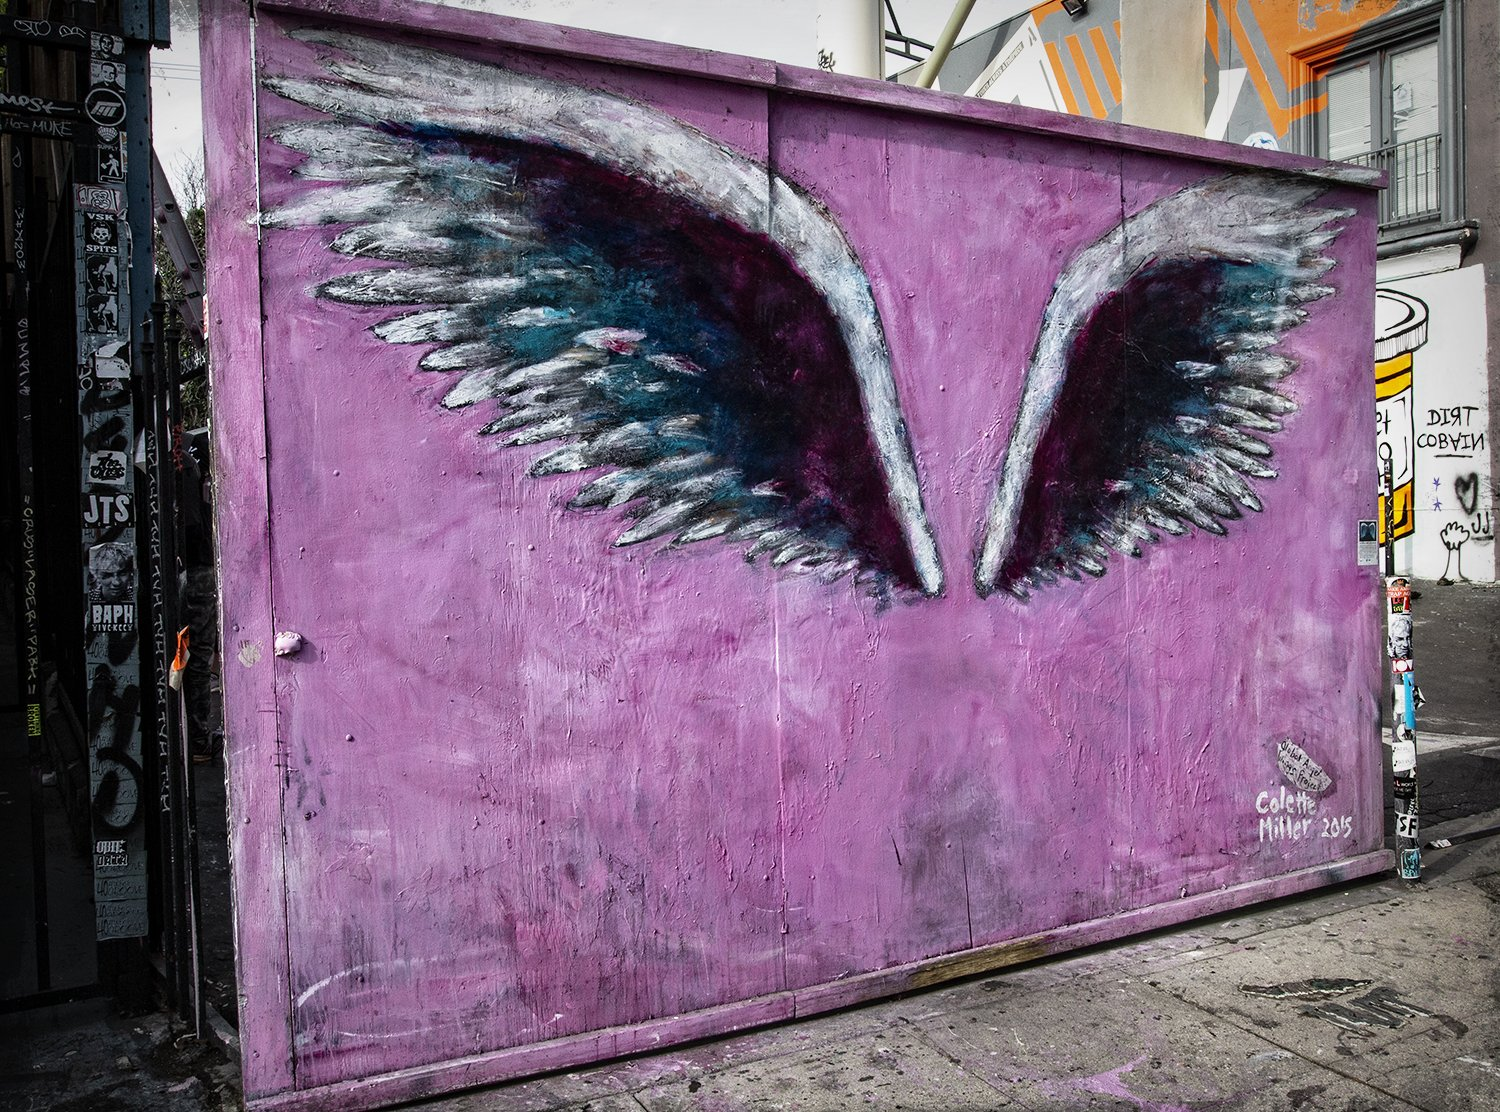 angel wings, graffiti, street art, paint, spray paint